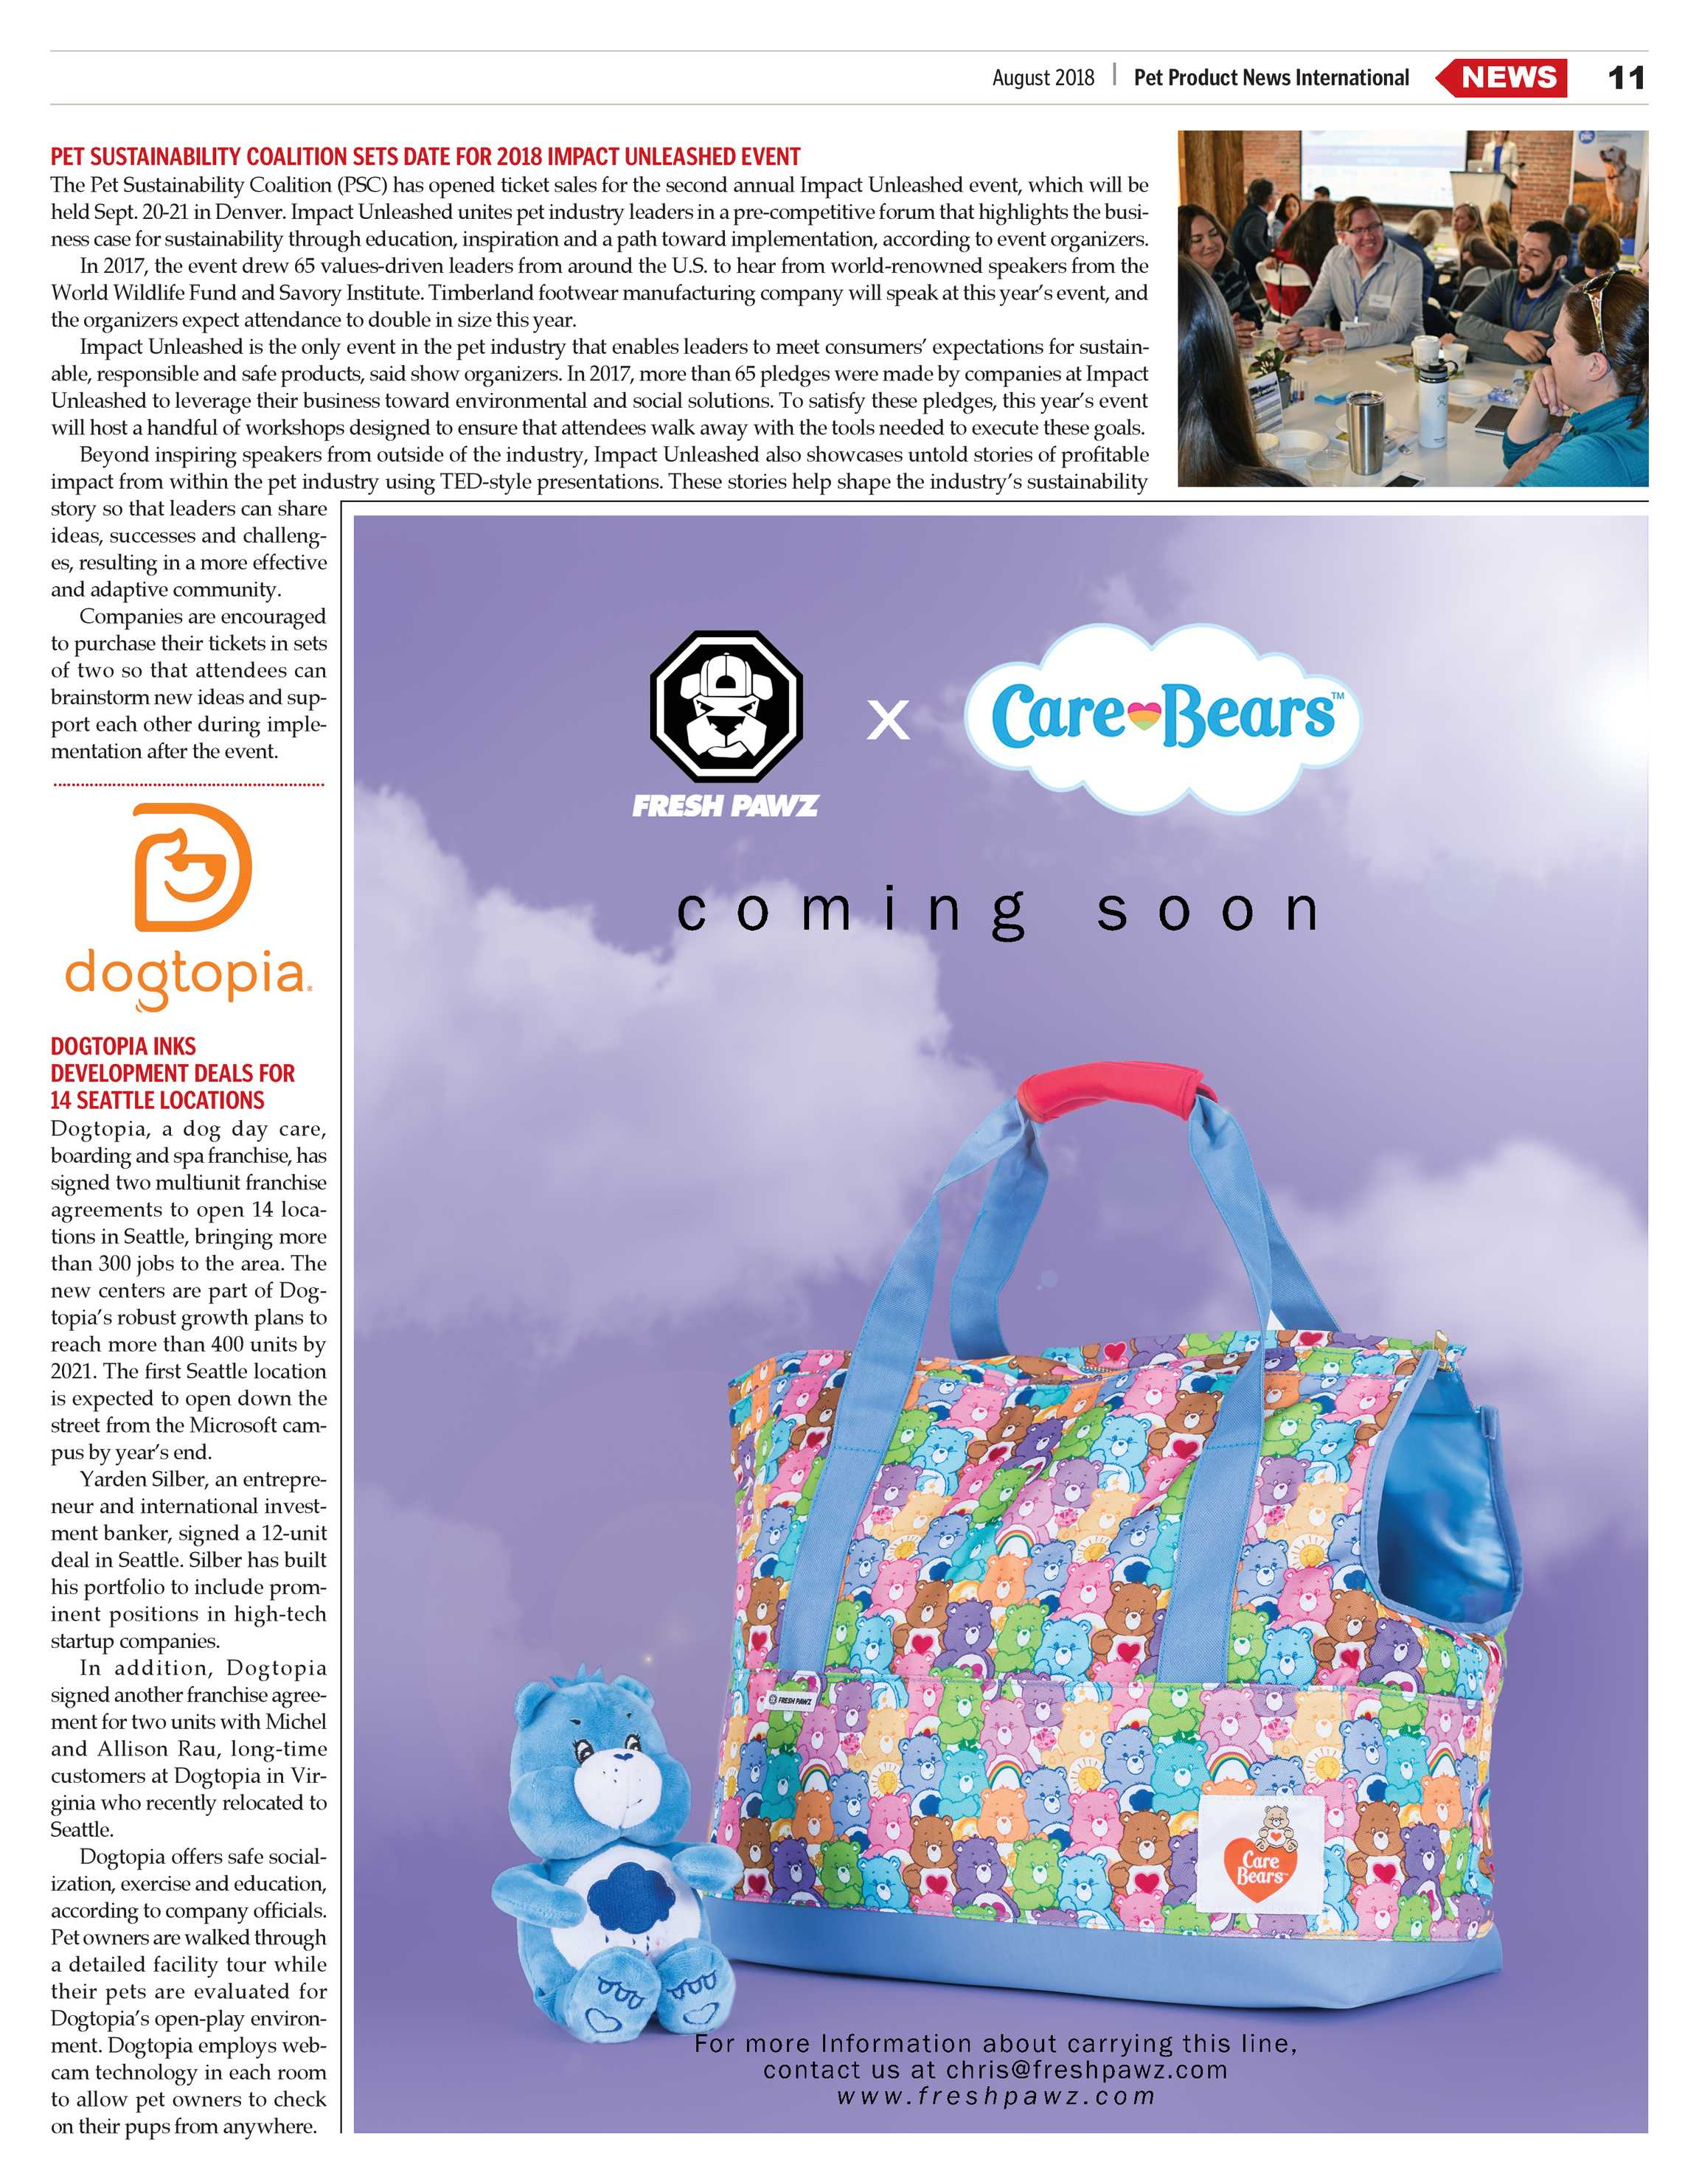 Pet Product News - August 2018 - page 11